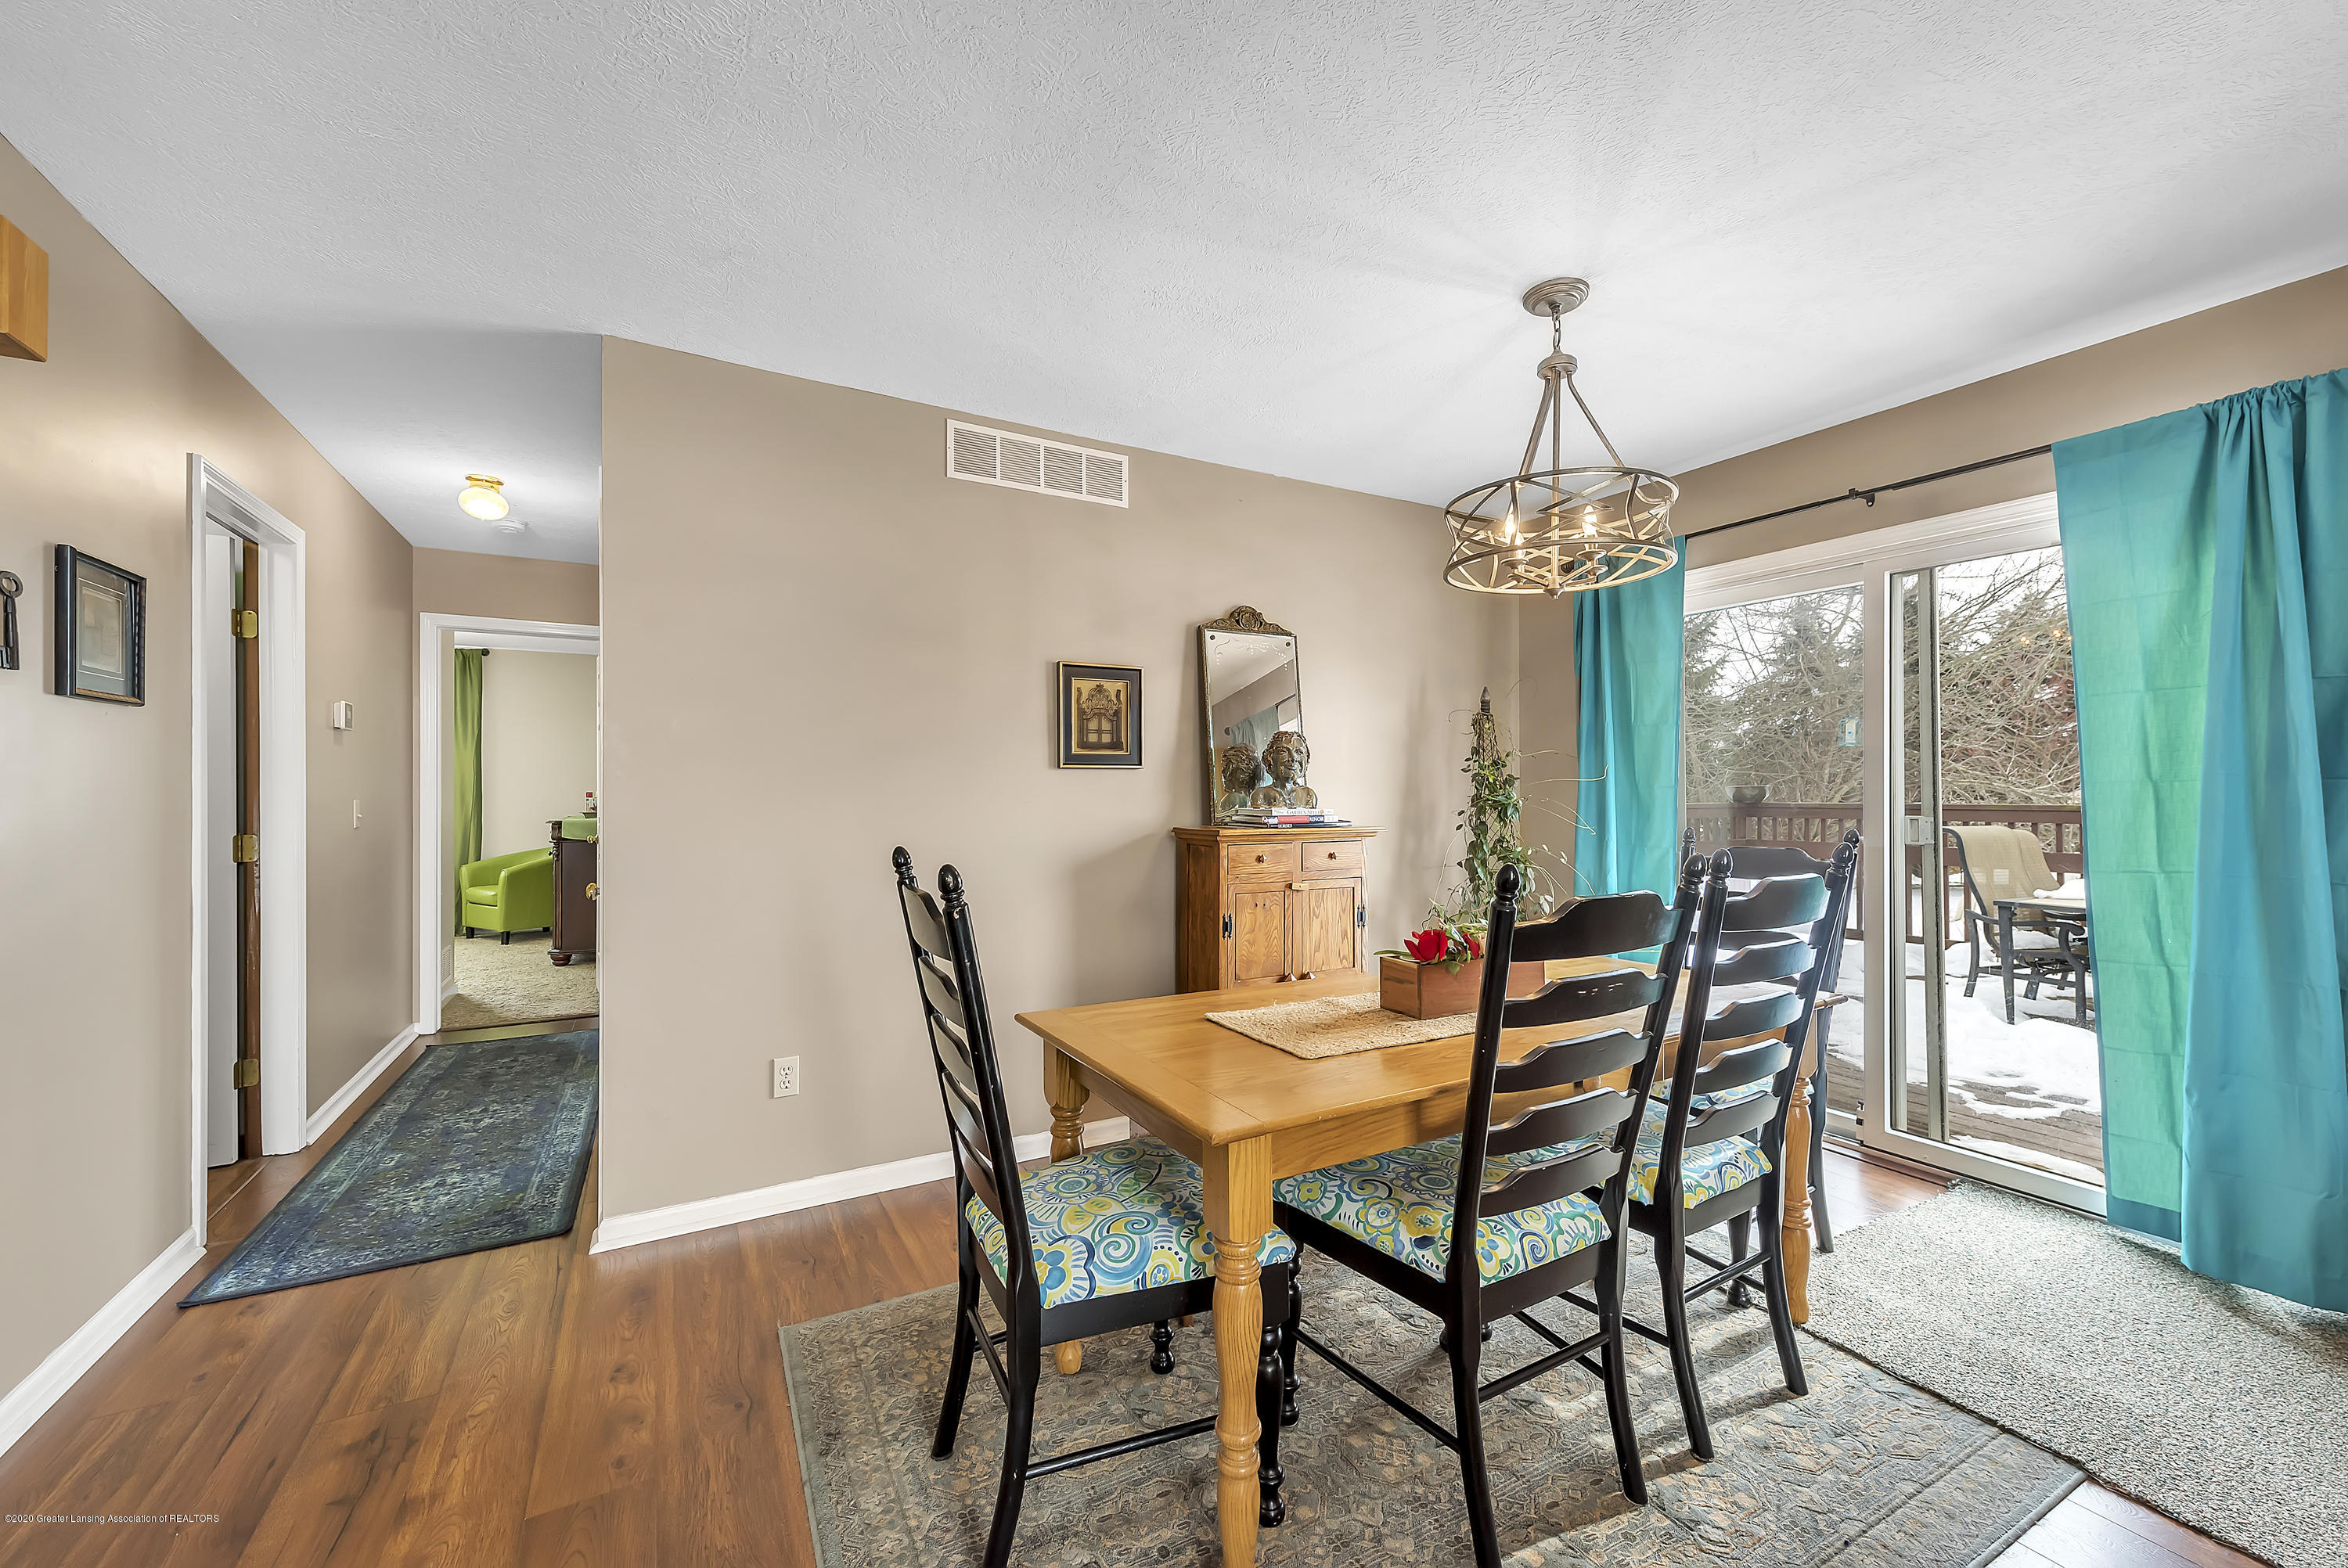 2450 Featherstone Dr - 2450-Featherstone-Dr-WindowStill-Real-Es - 10